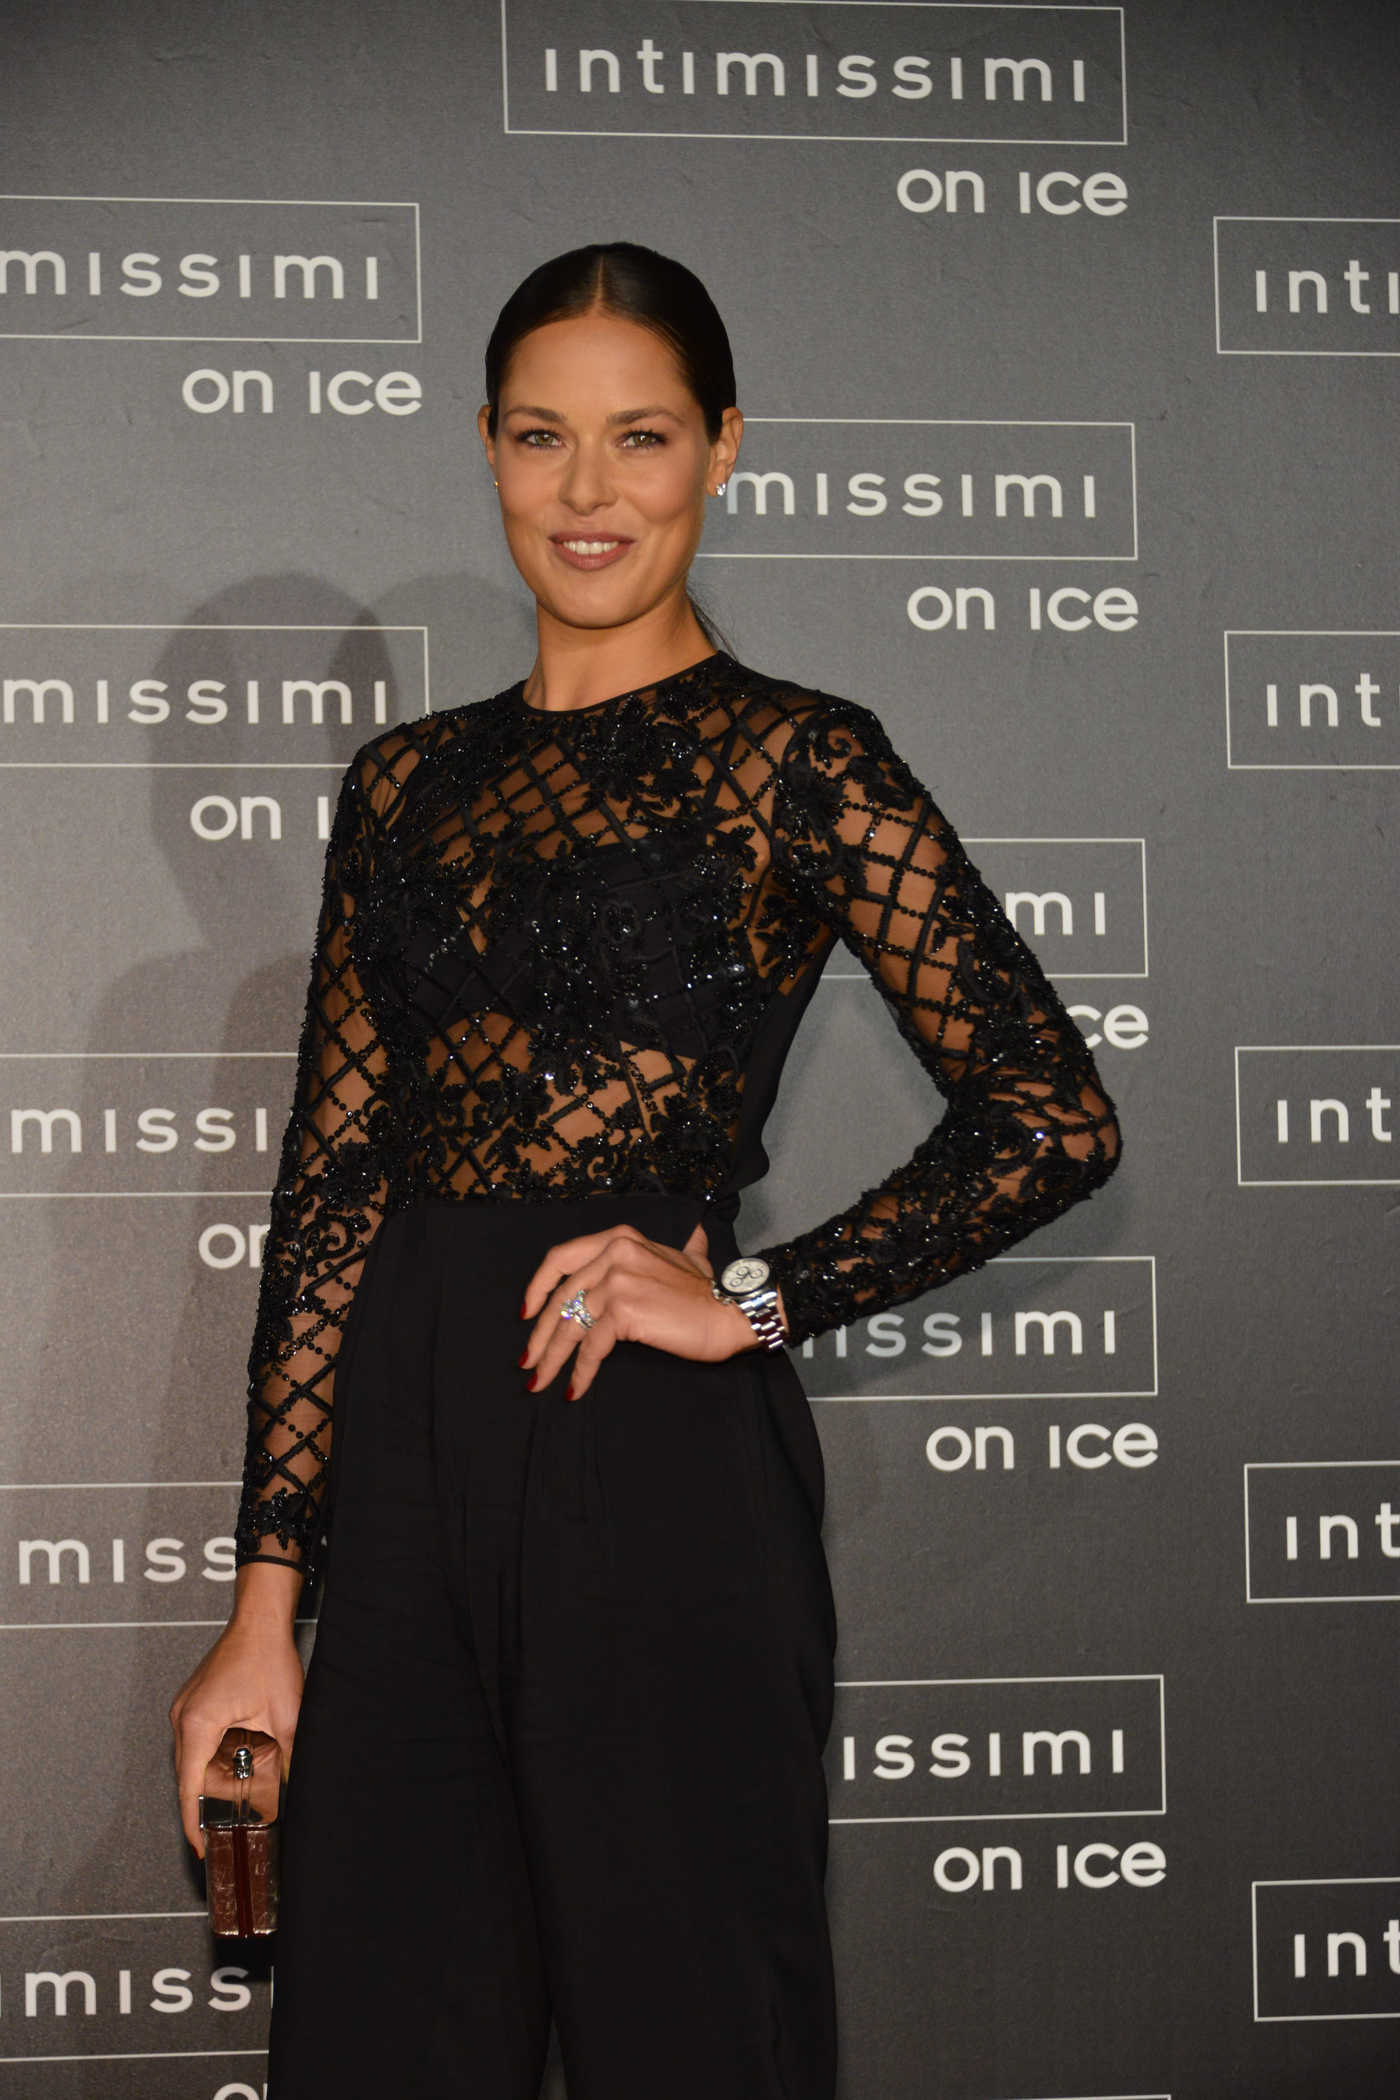 Ana Ivanovic Attends Intimissimi On Ice at Arena in Verona 10/07/2016